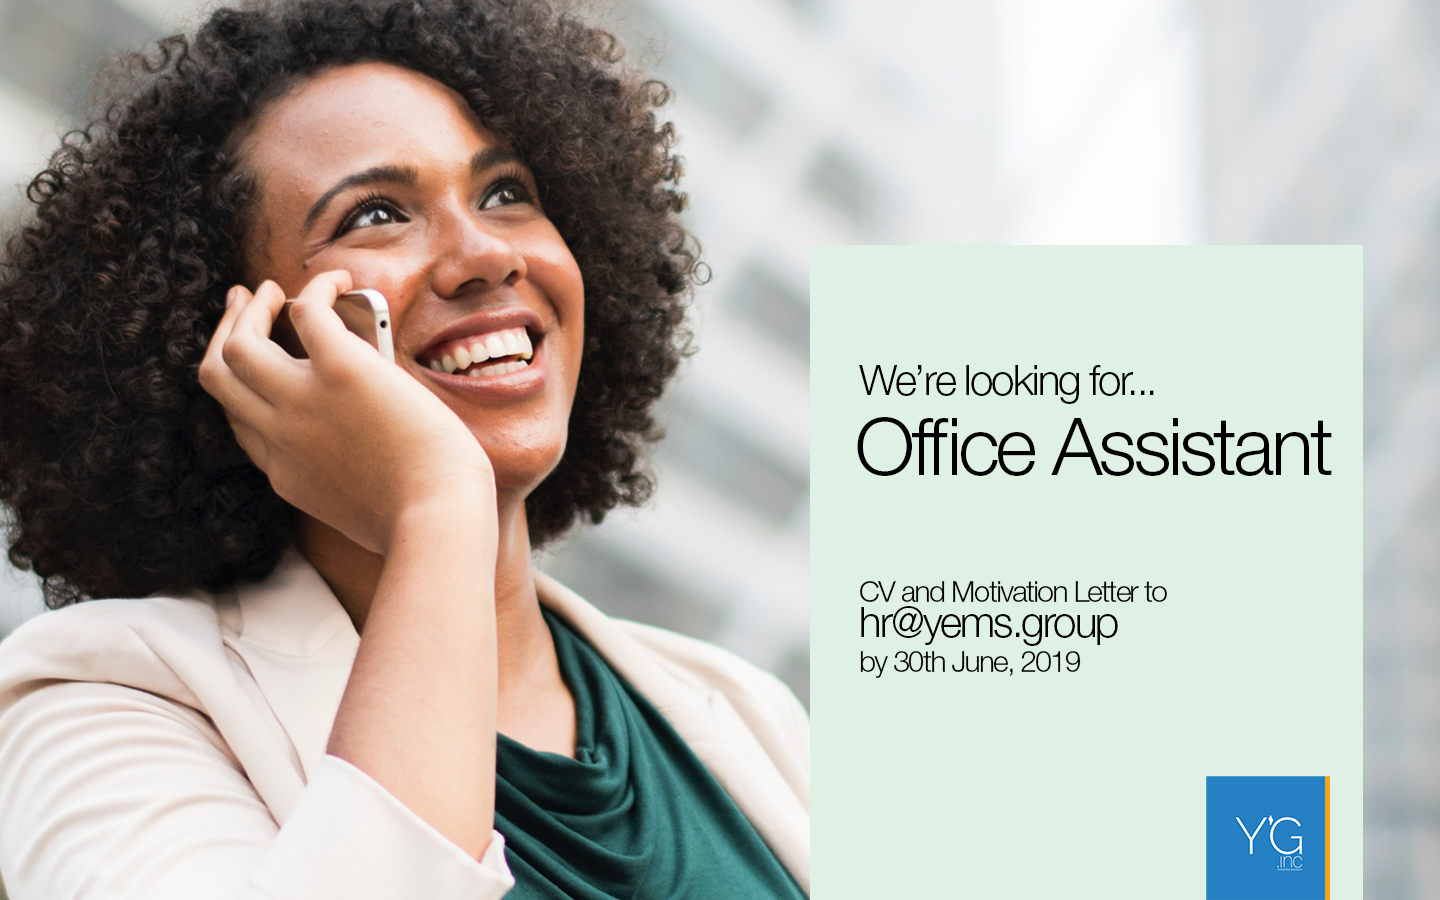 We're Looking for an Office Assistant